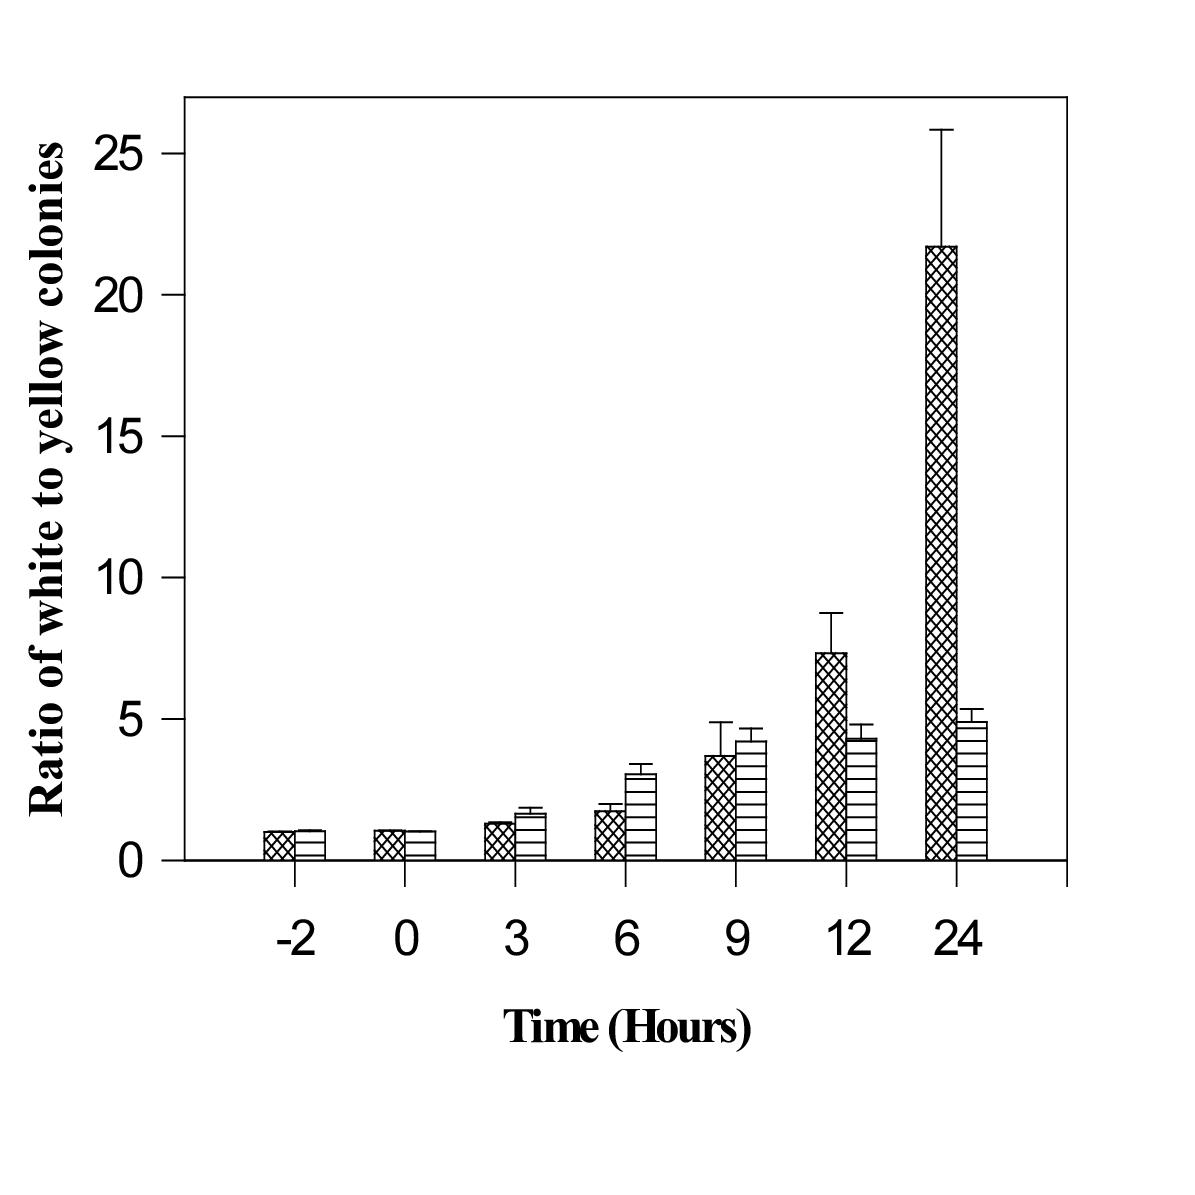 http://static-content.springer.com/image/art%3A10.1186%2F1471-2180-1-26/MediaObjects/12866_2001_Article_26_Fig3_HTML.jpg